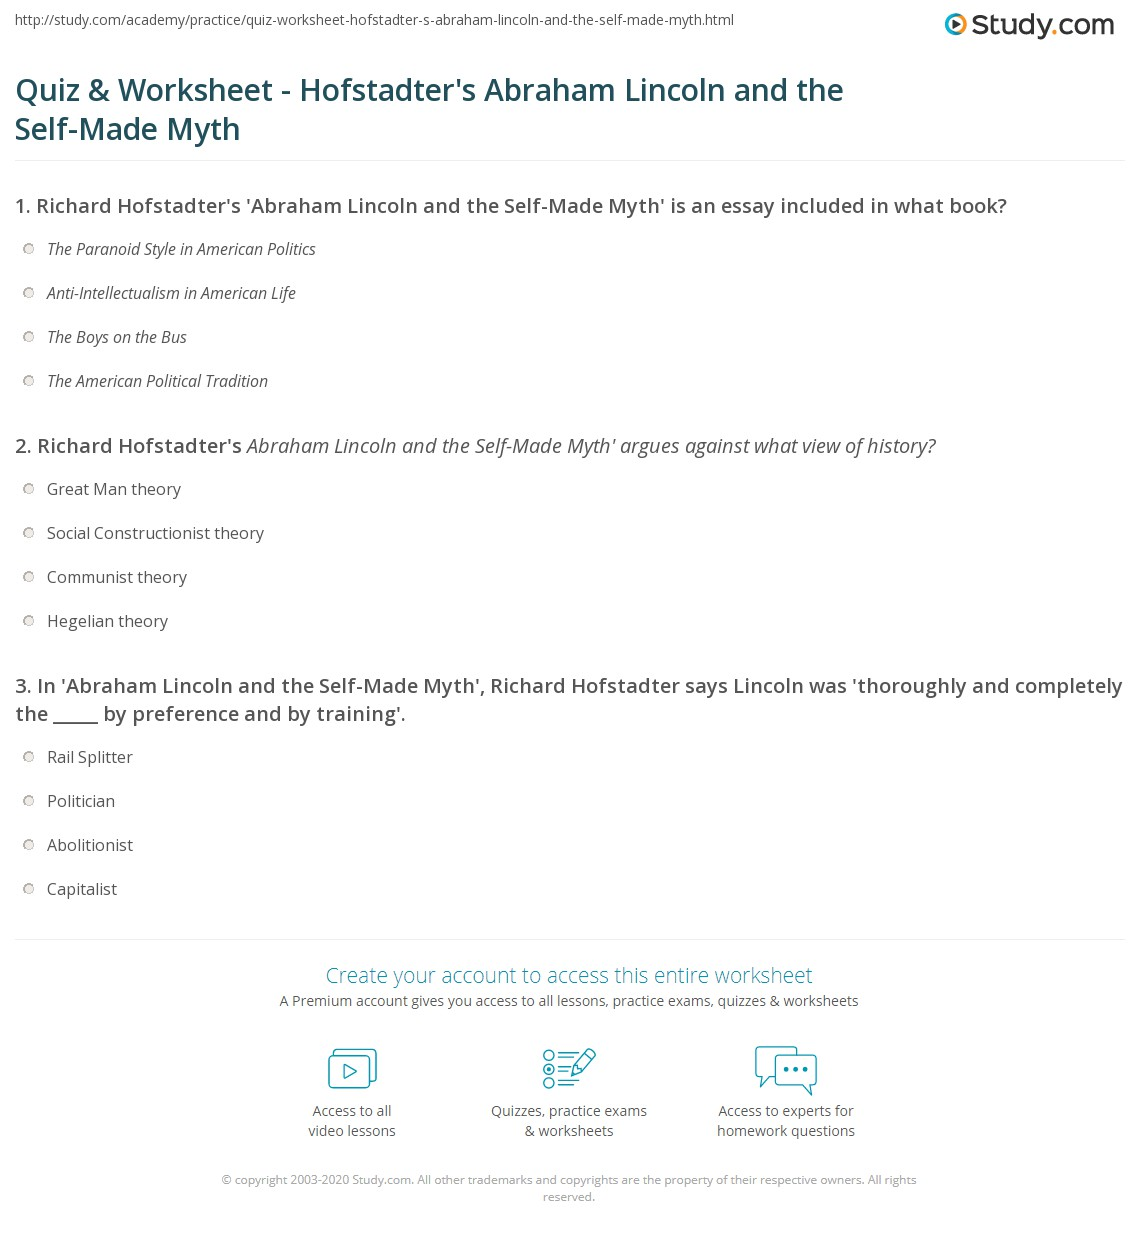 quiz worksheet hofstadter s abraham lincoln and the self made print richard hofstadter s abraham lincoln and the self made myth worksheet